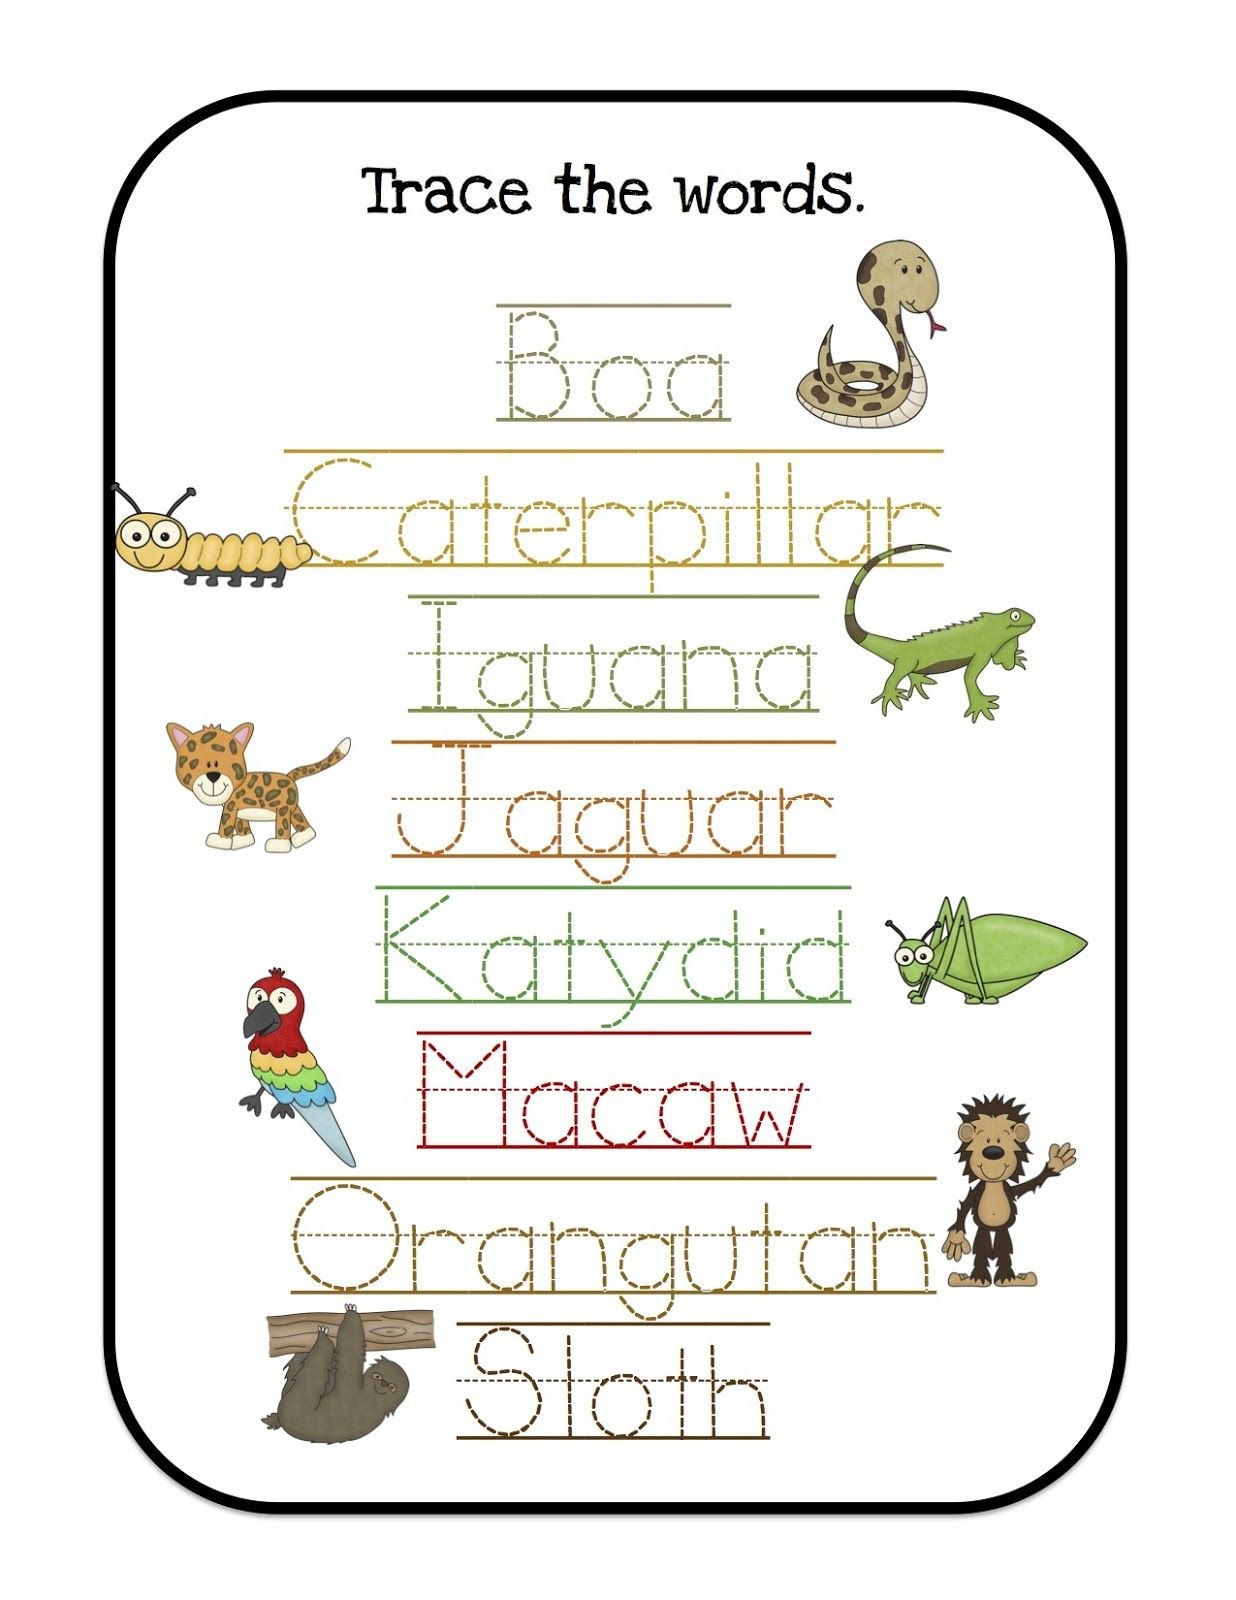 Rainforest Worksheets for Kindergarten Rain Trace the Words 1 236—1 600 Pixels